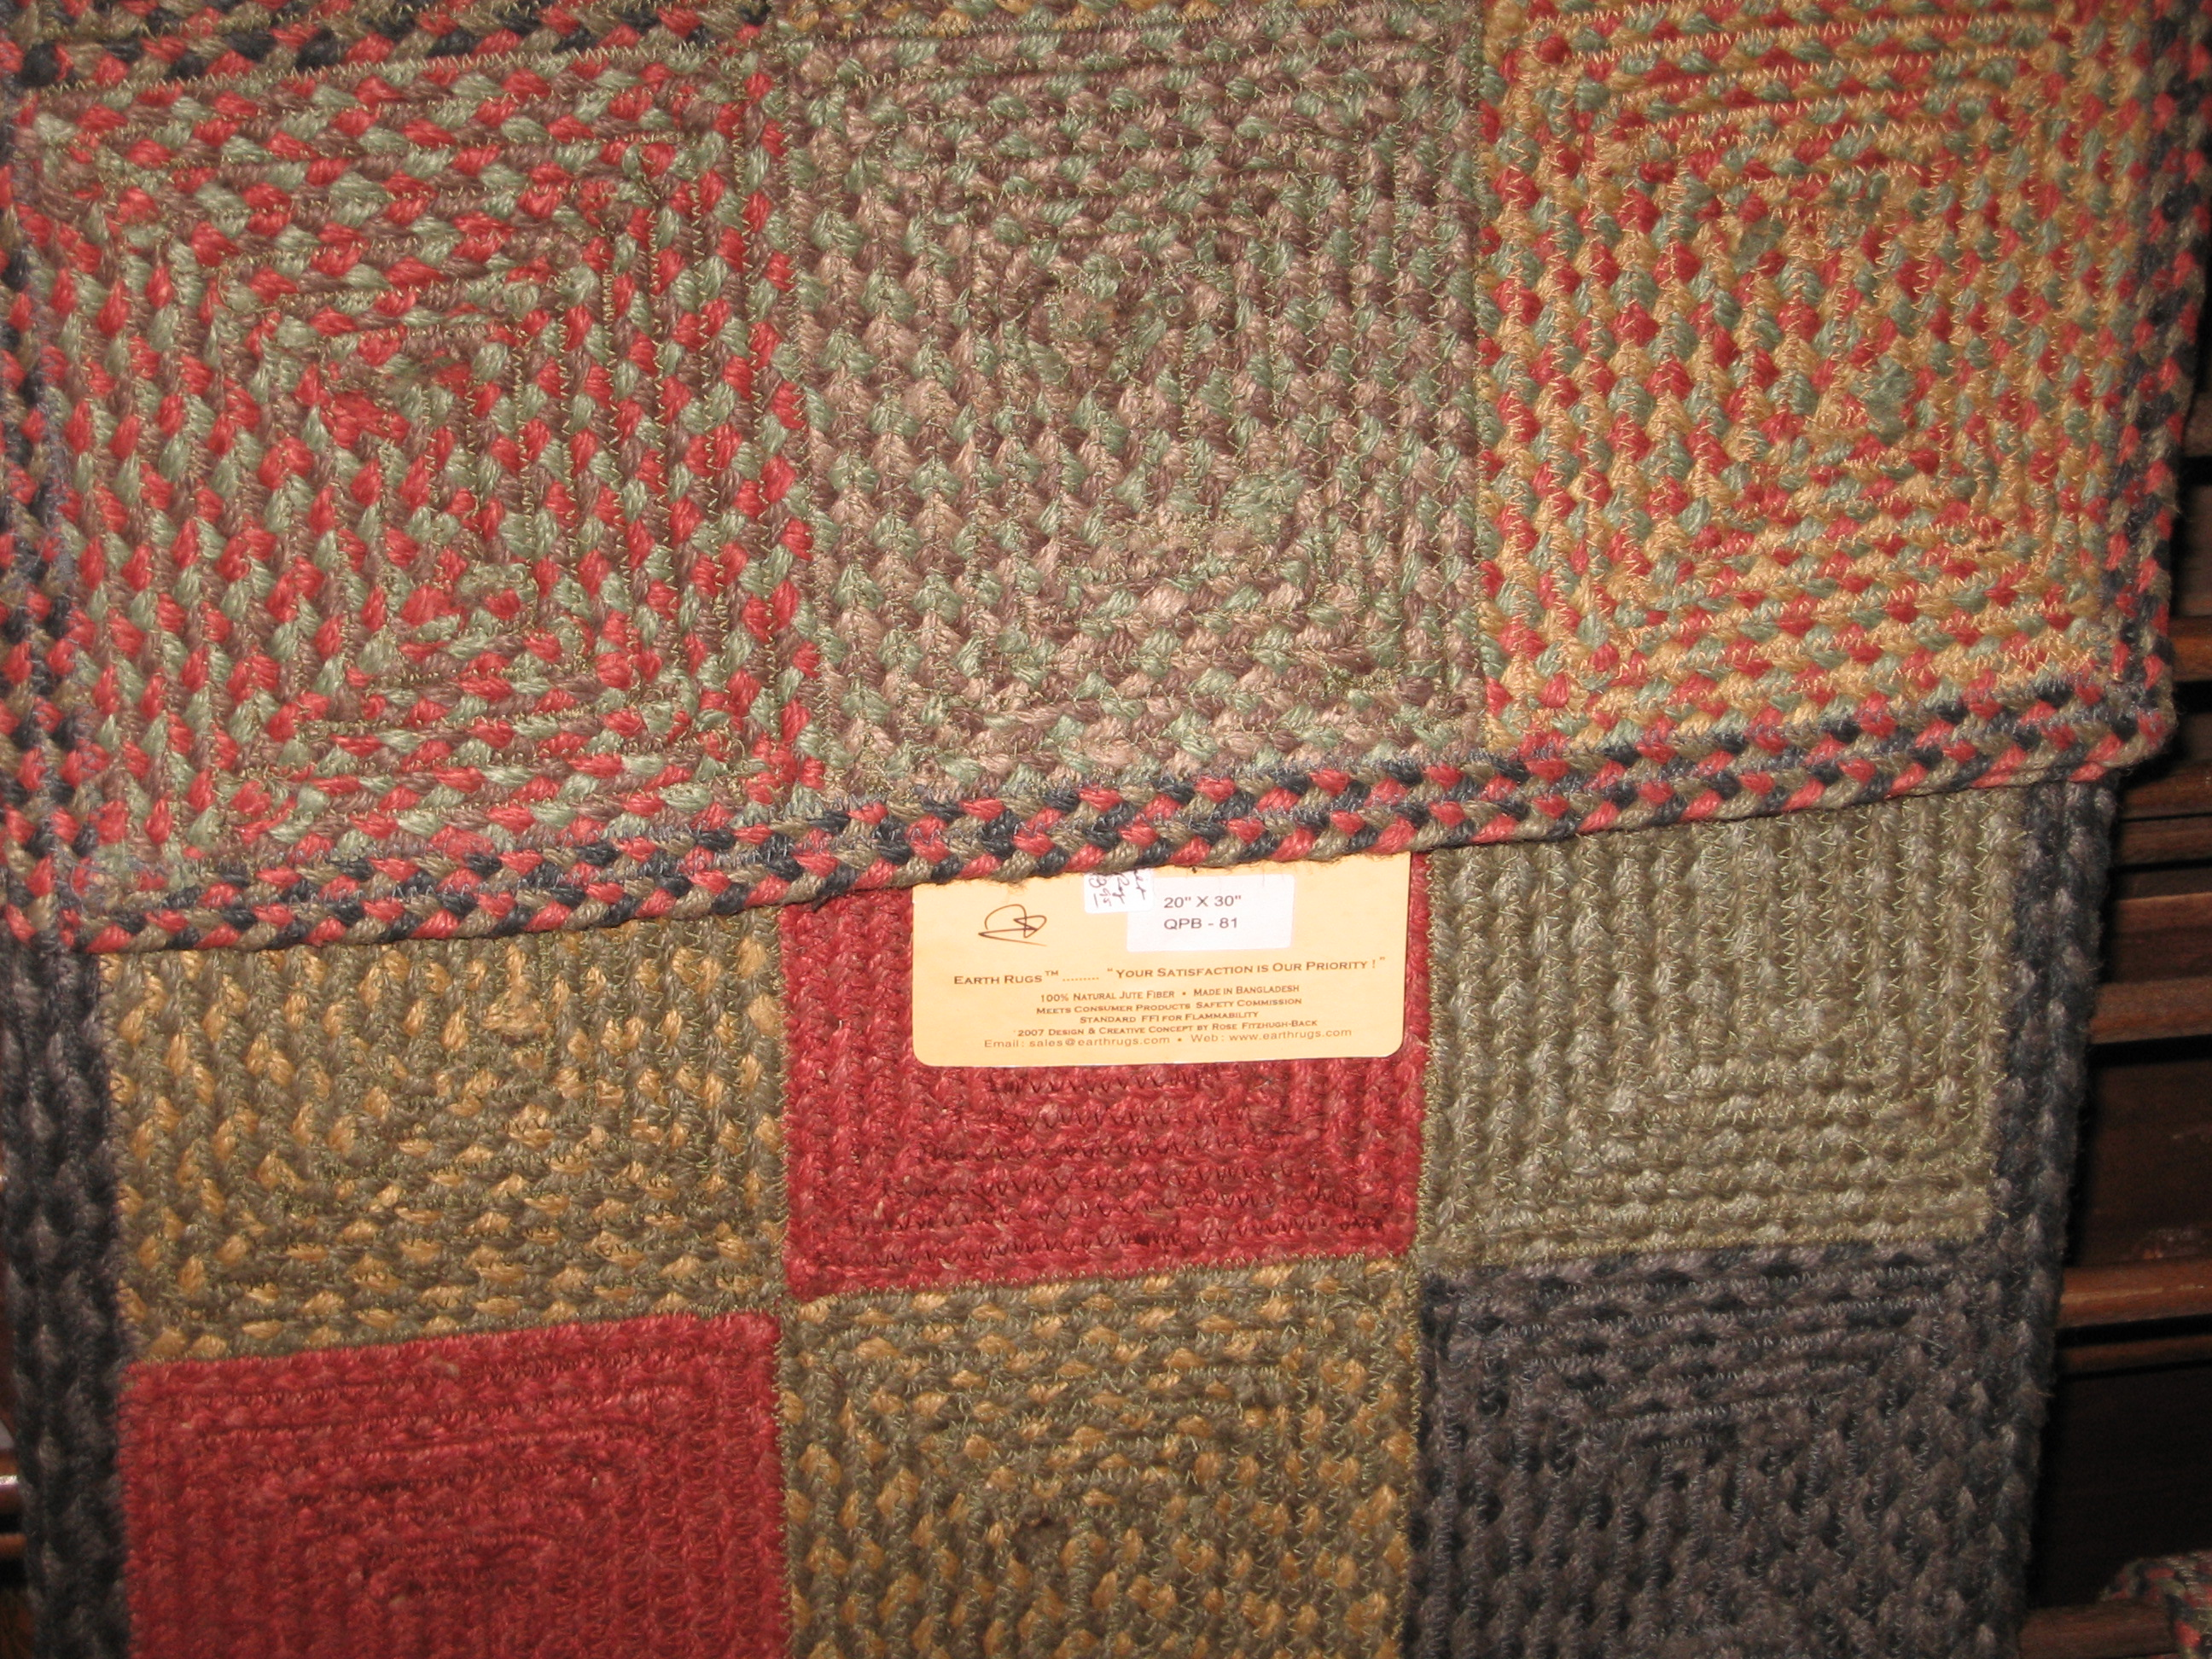 We Have Just Added A New Line Of Rugs At Mantorville Square. These Earth  Rugs Are 100% Jute And Come In A Nice Assortment Of Colors.